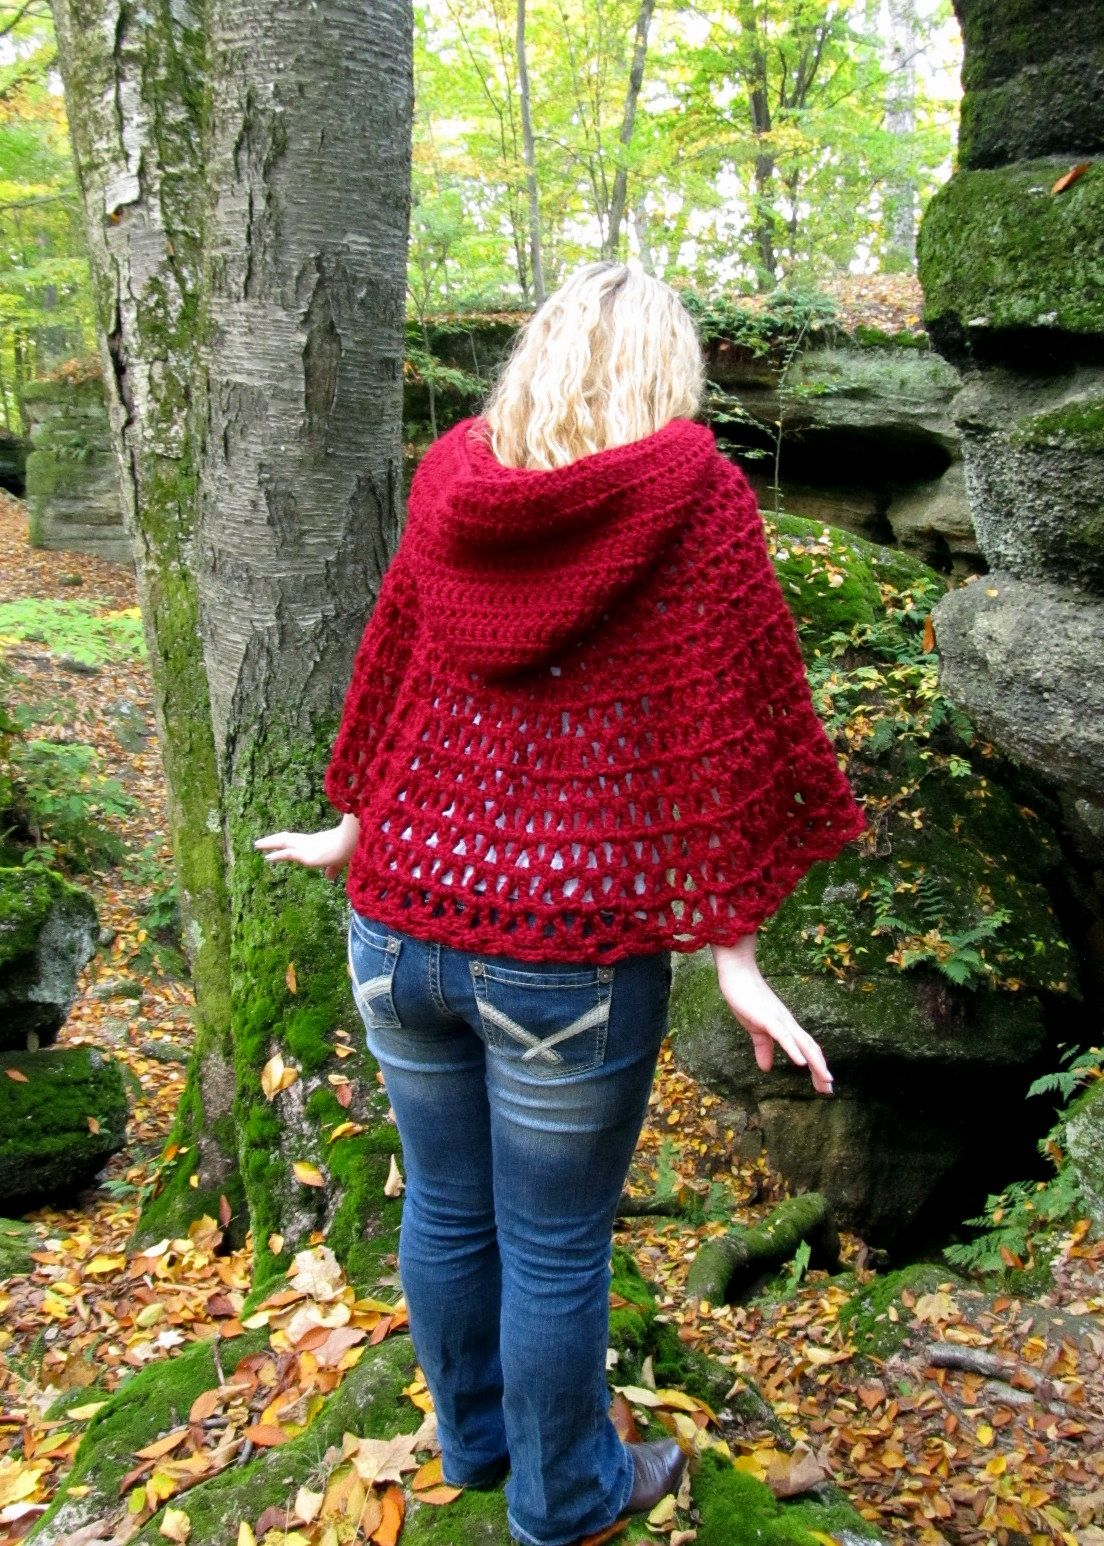 Newcrochet wildwood capelet new crochet pattern and tutorial newcrochet wildwood capelet new crochet pattern and tutorial bankloansurffo Choice Image